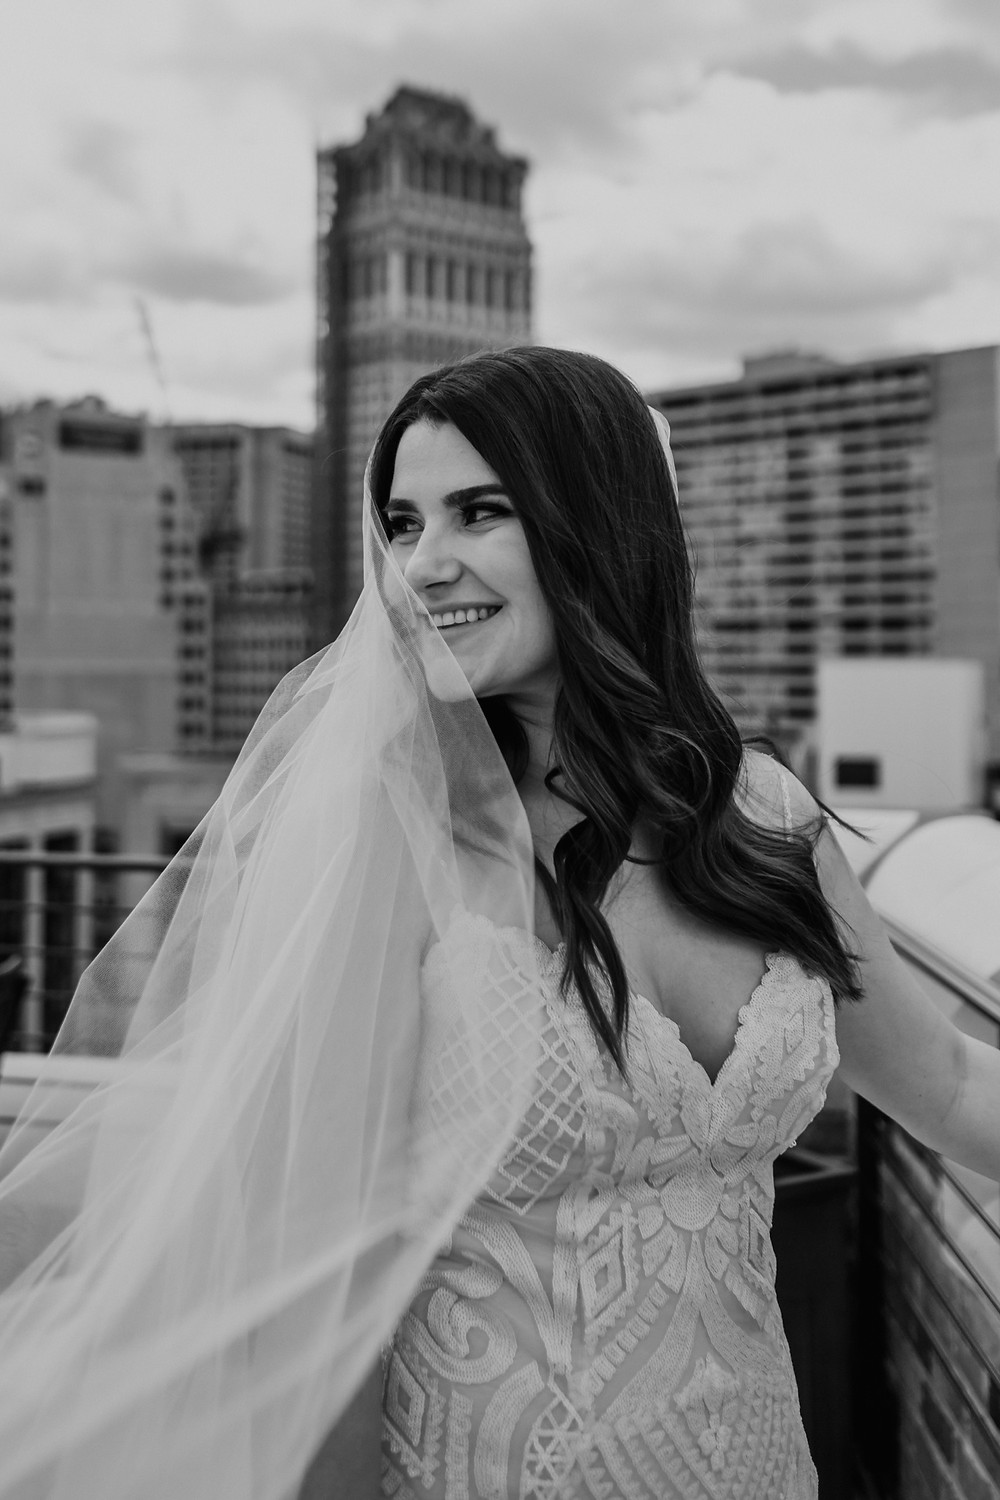 Wedding day photos in Detroit. Photographed by Nicole Leanne Photography.